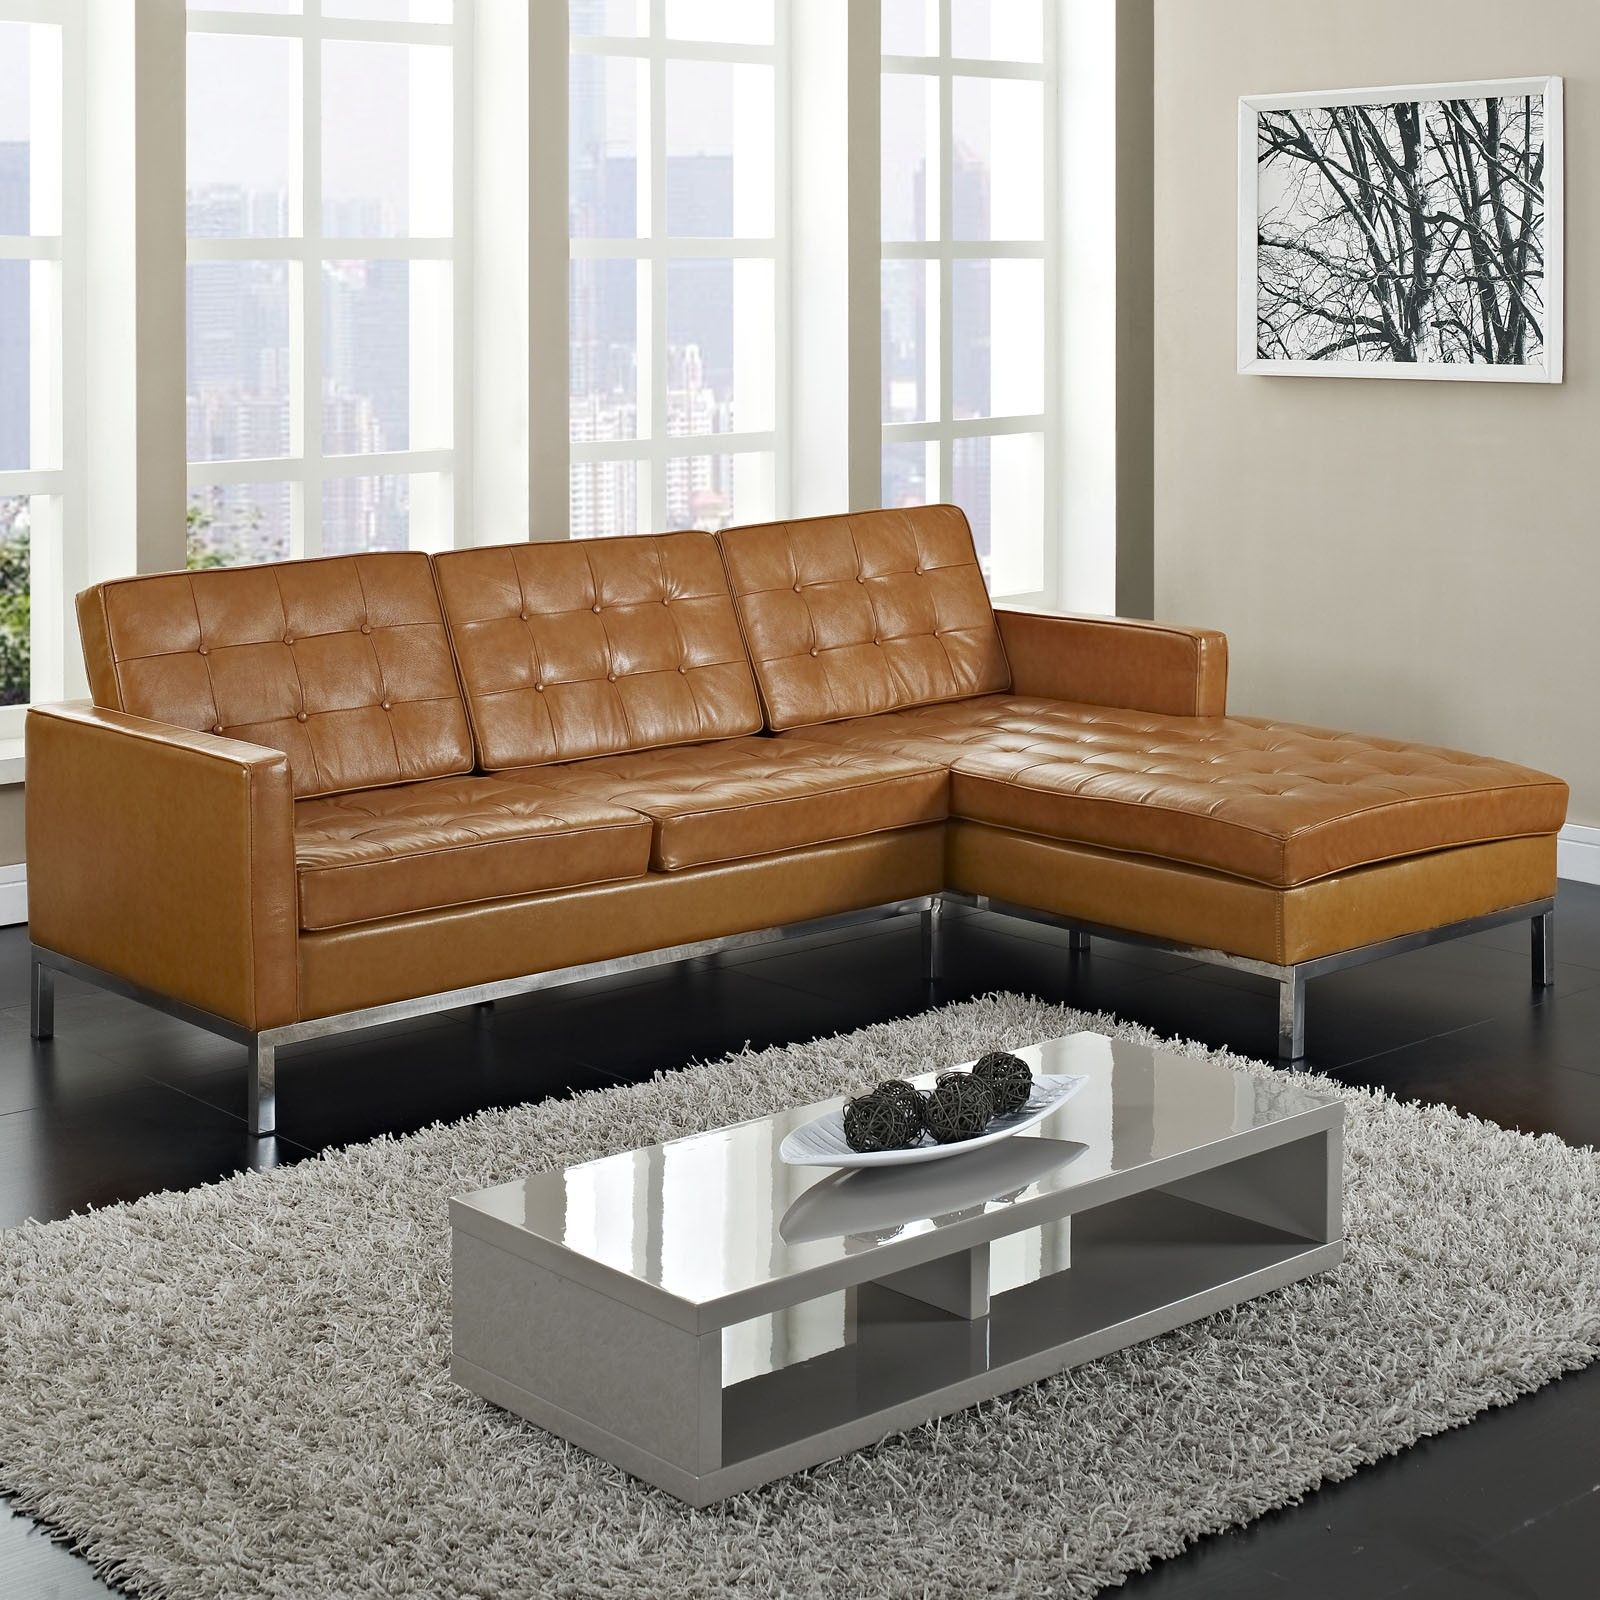 ■sleeper sofa Understand Leather Sectional Sleeper Sofa